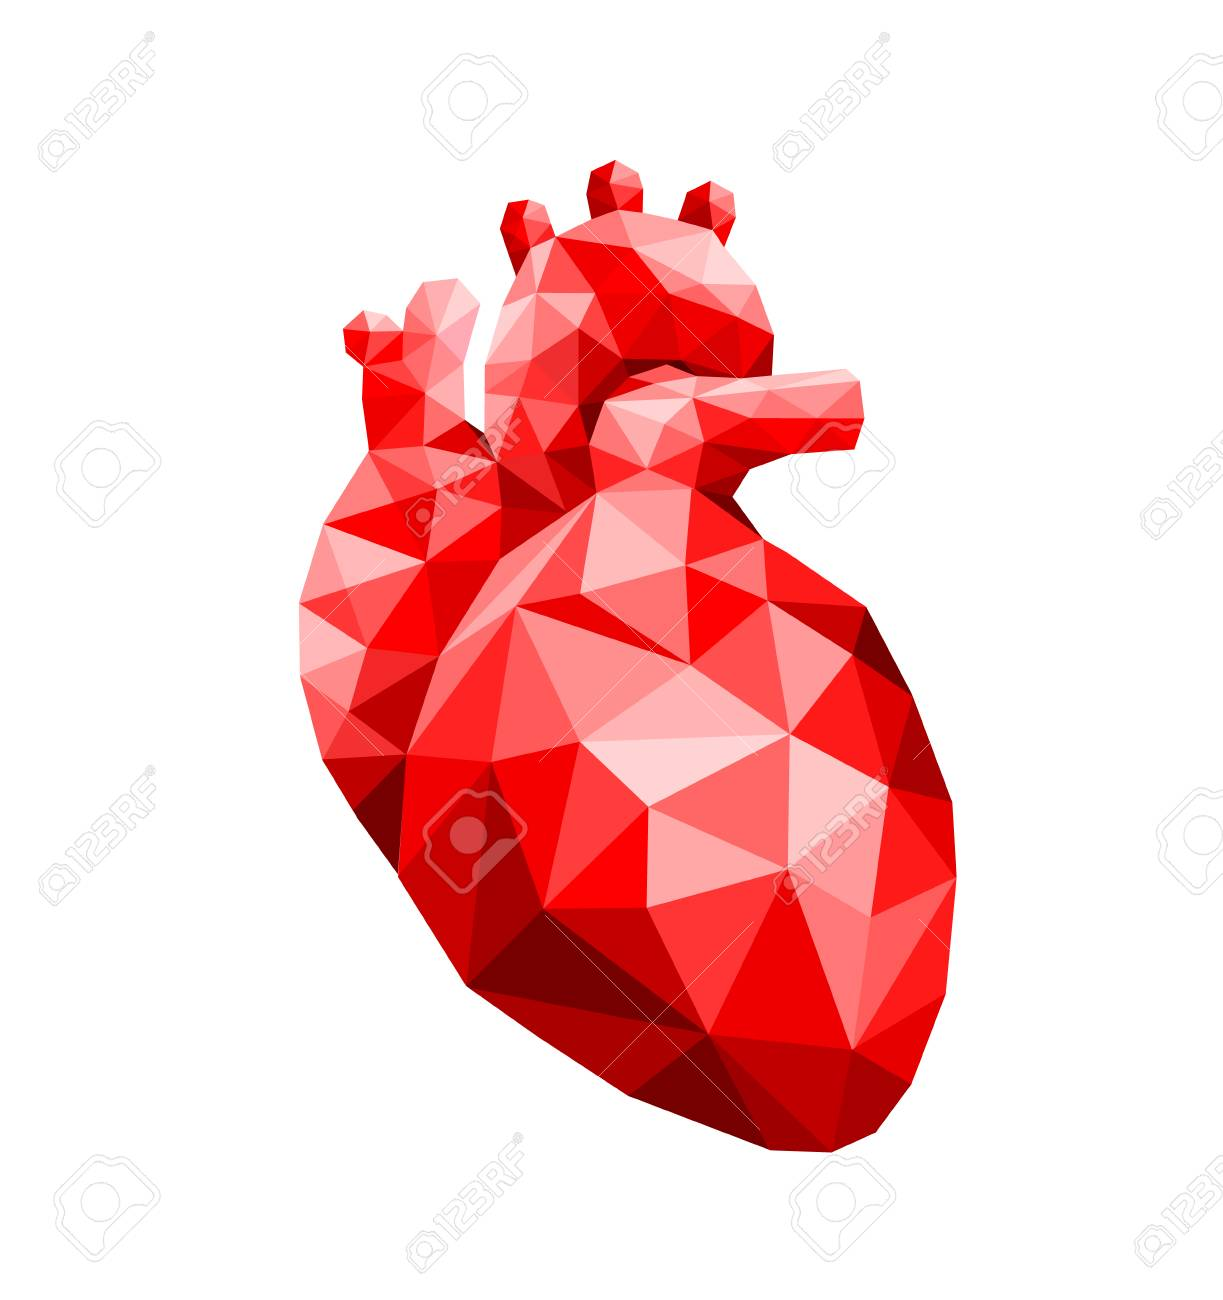 Polygonal Art Of Human Heart Design Faceted Low Poly Geometry